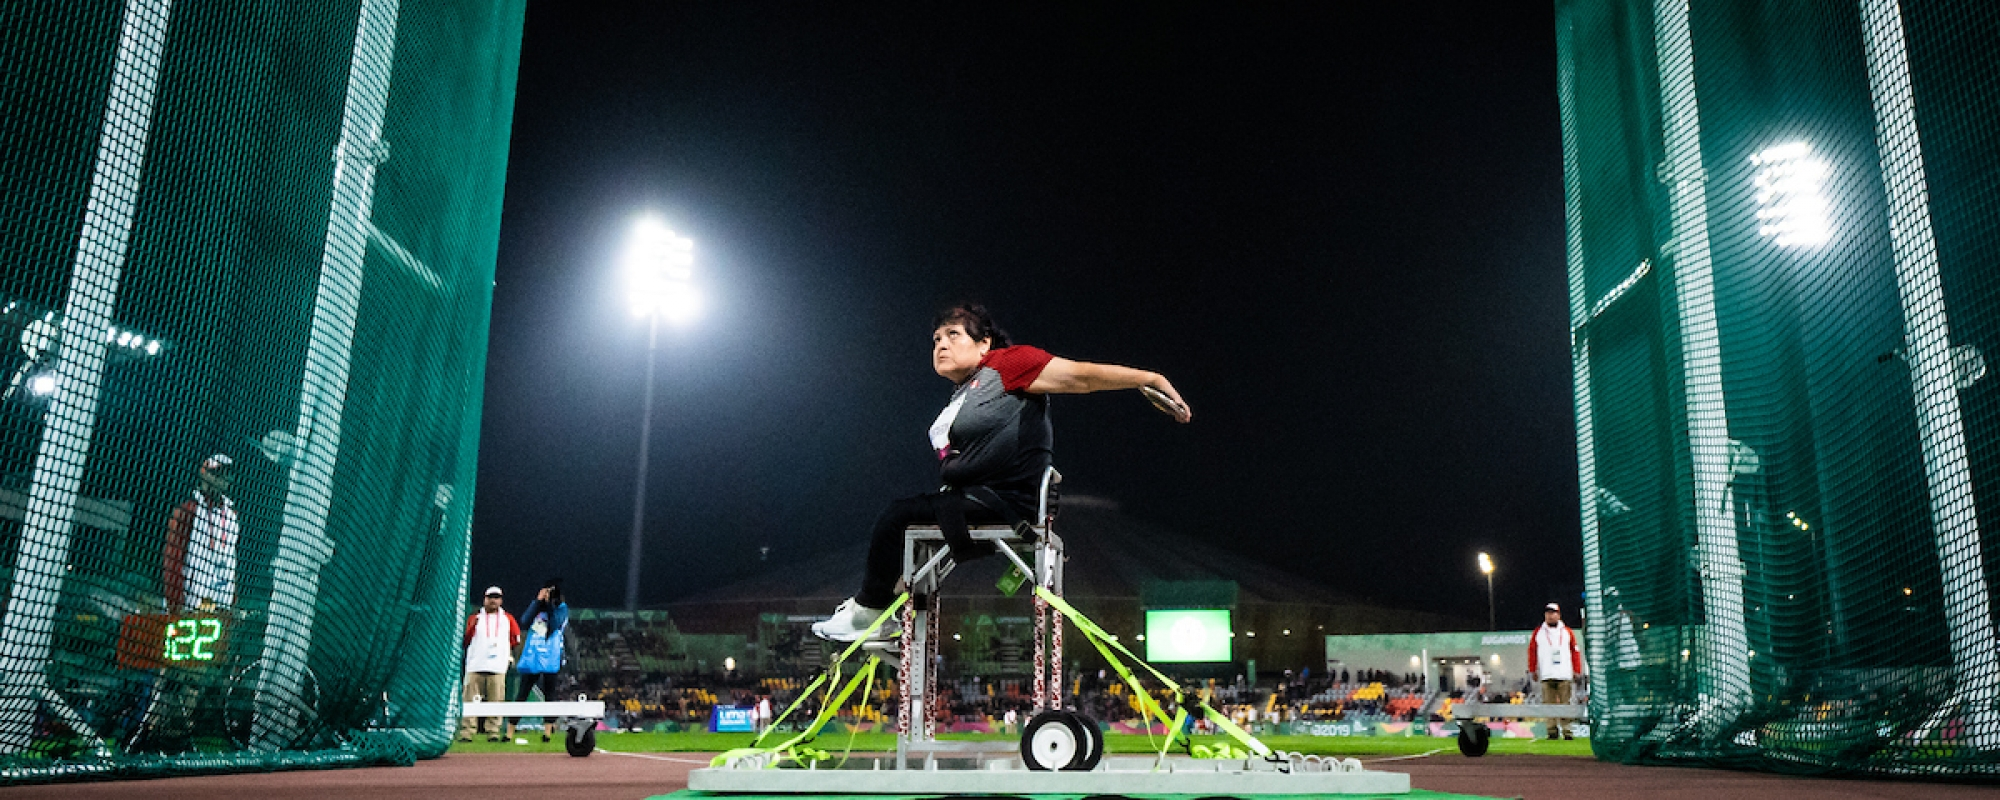 Martha Sandoval Gustafson competes in women's discus throw F53